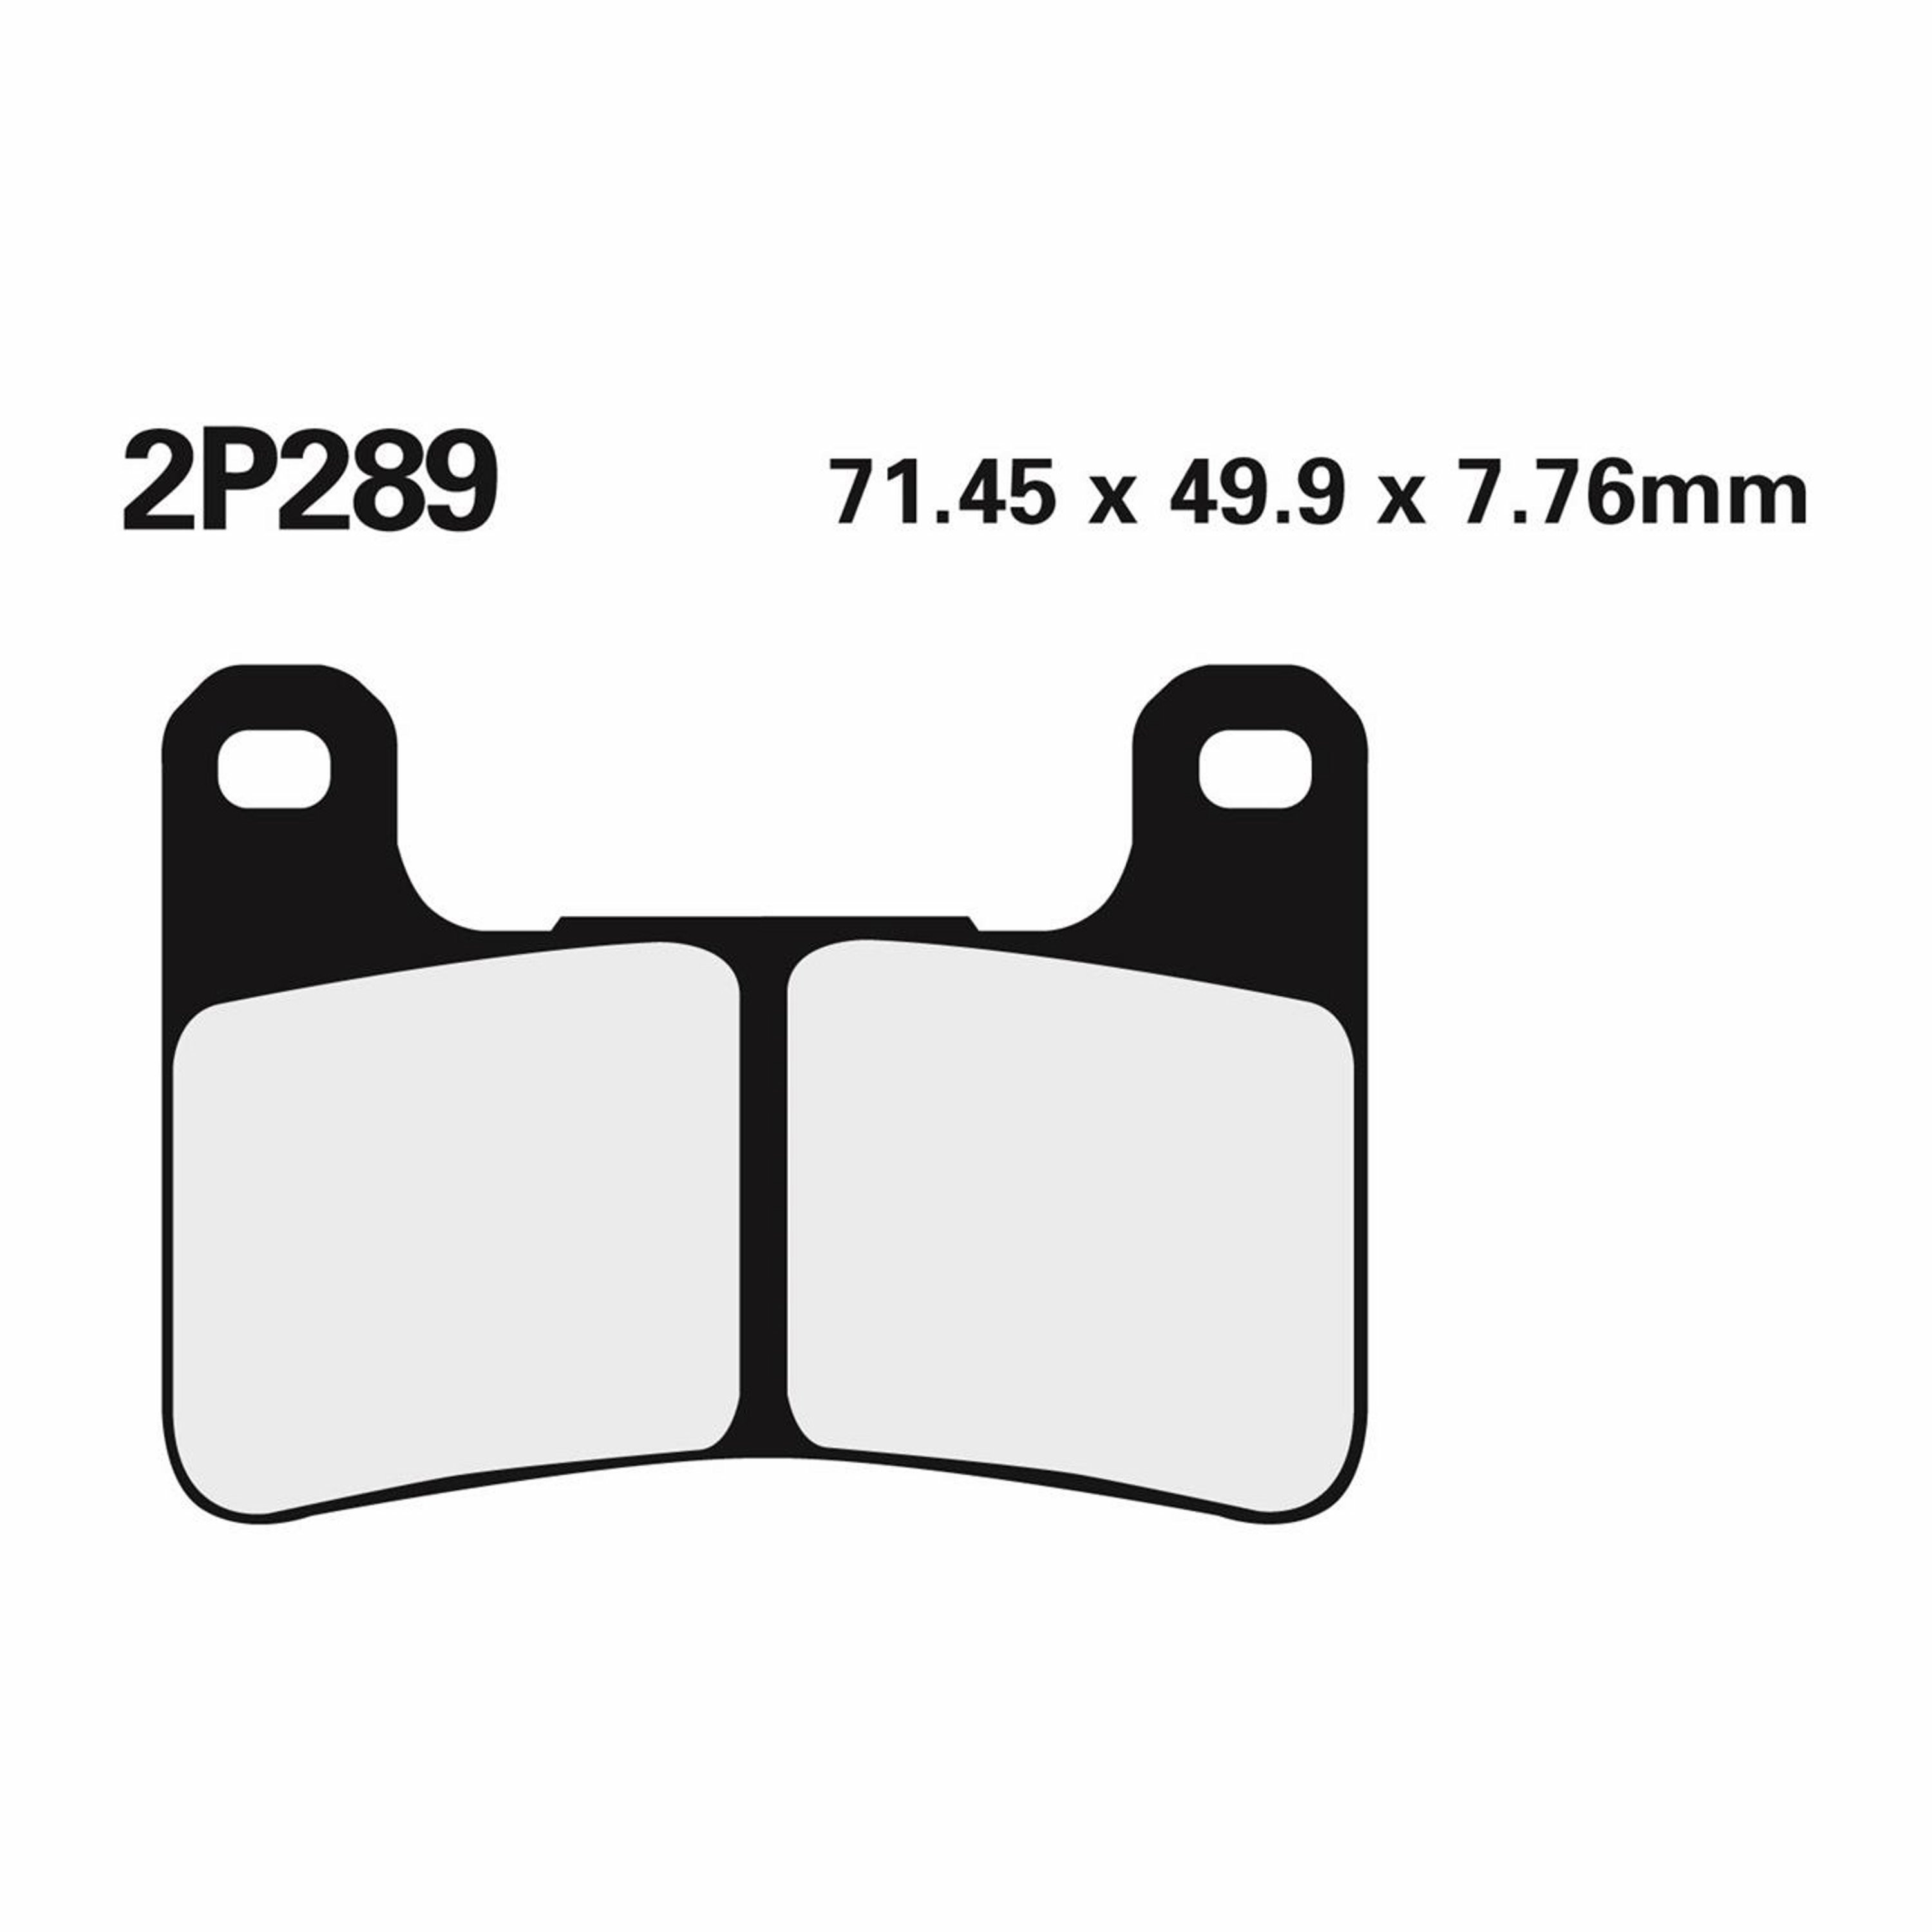 BRAKE PADS NISSIN | TYPE 2P-289ST | SINTERED